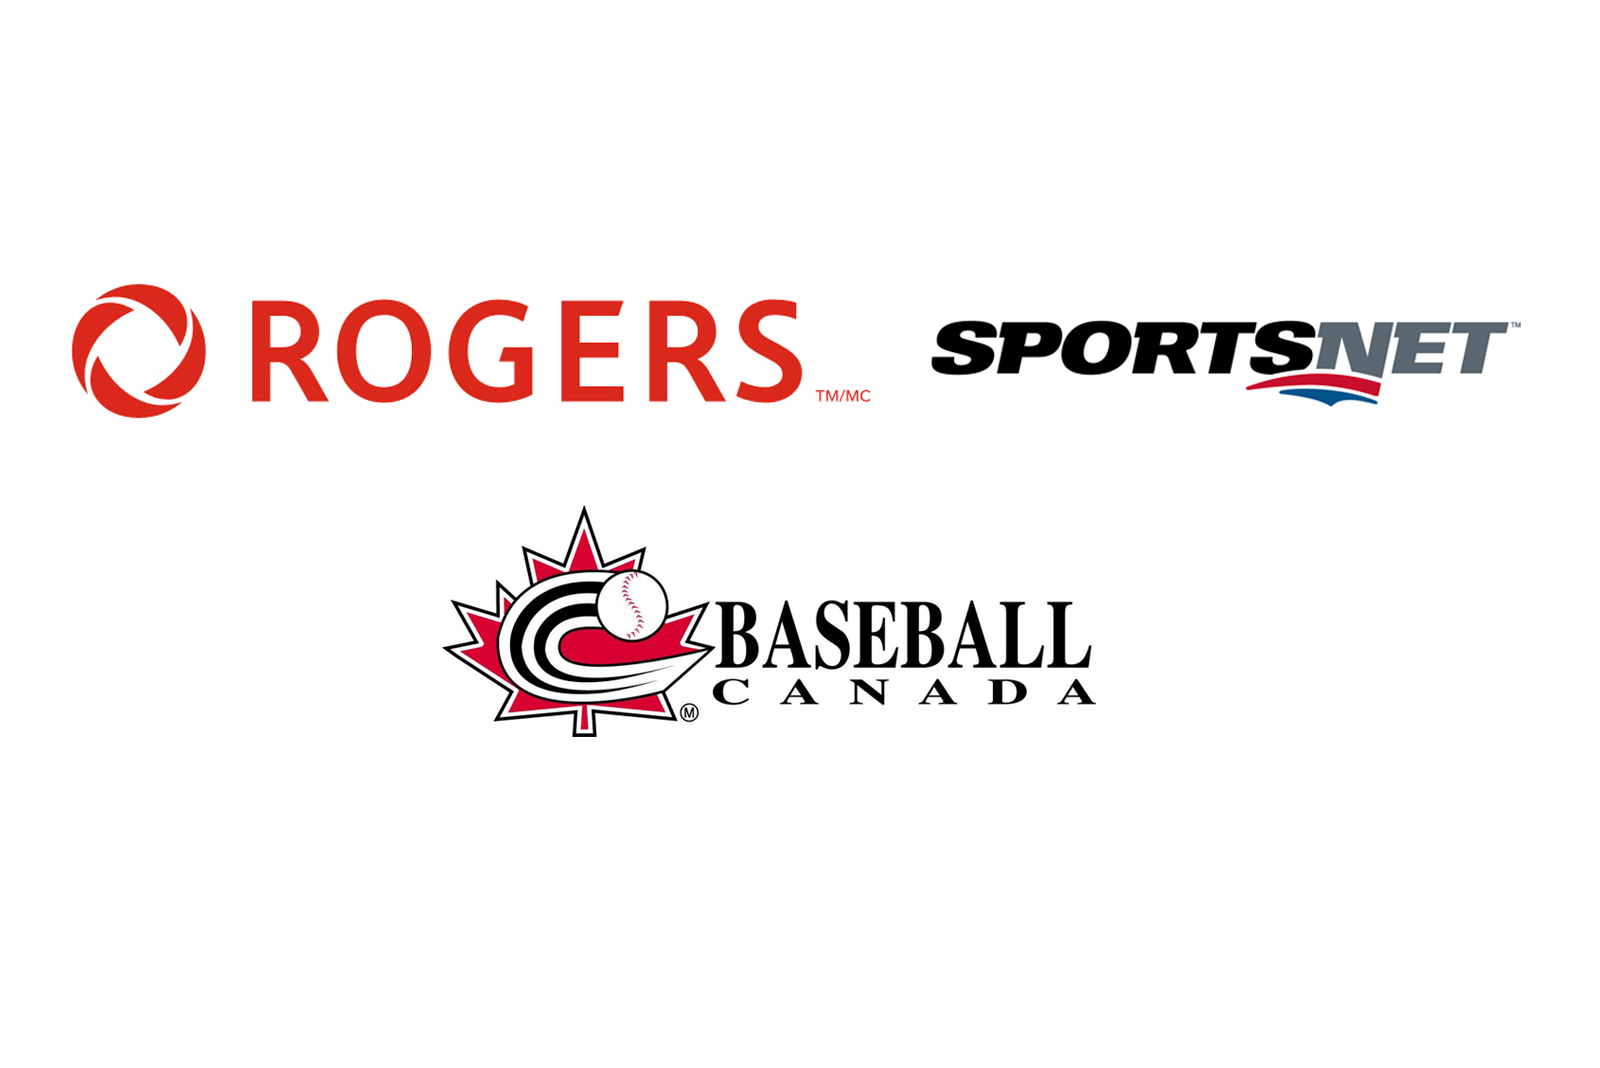 Rogers and Baseball Canada Partner to Grow the Game From Coast to Coast